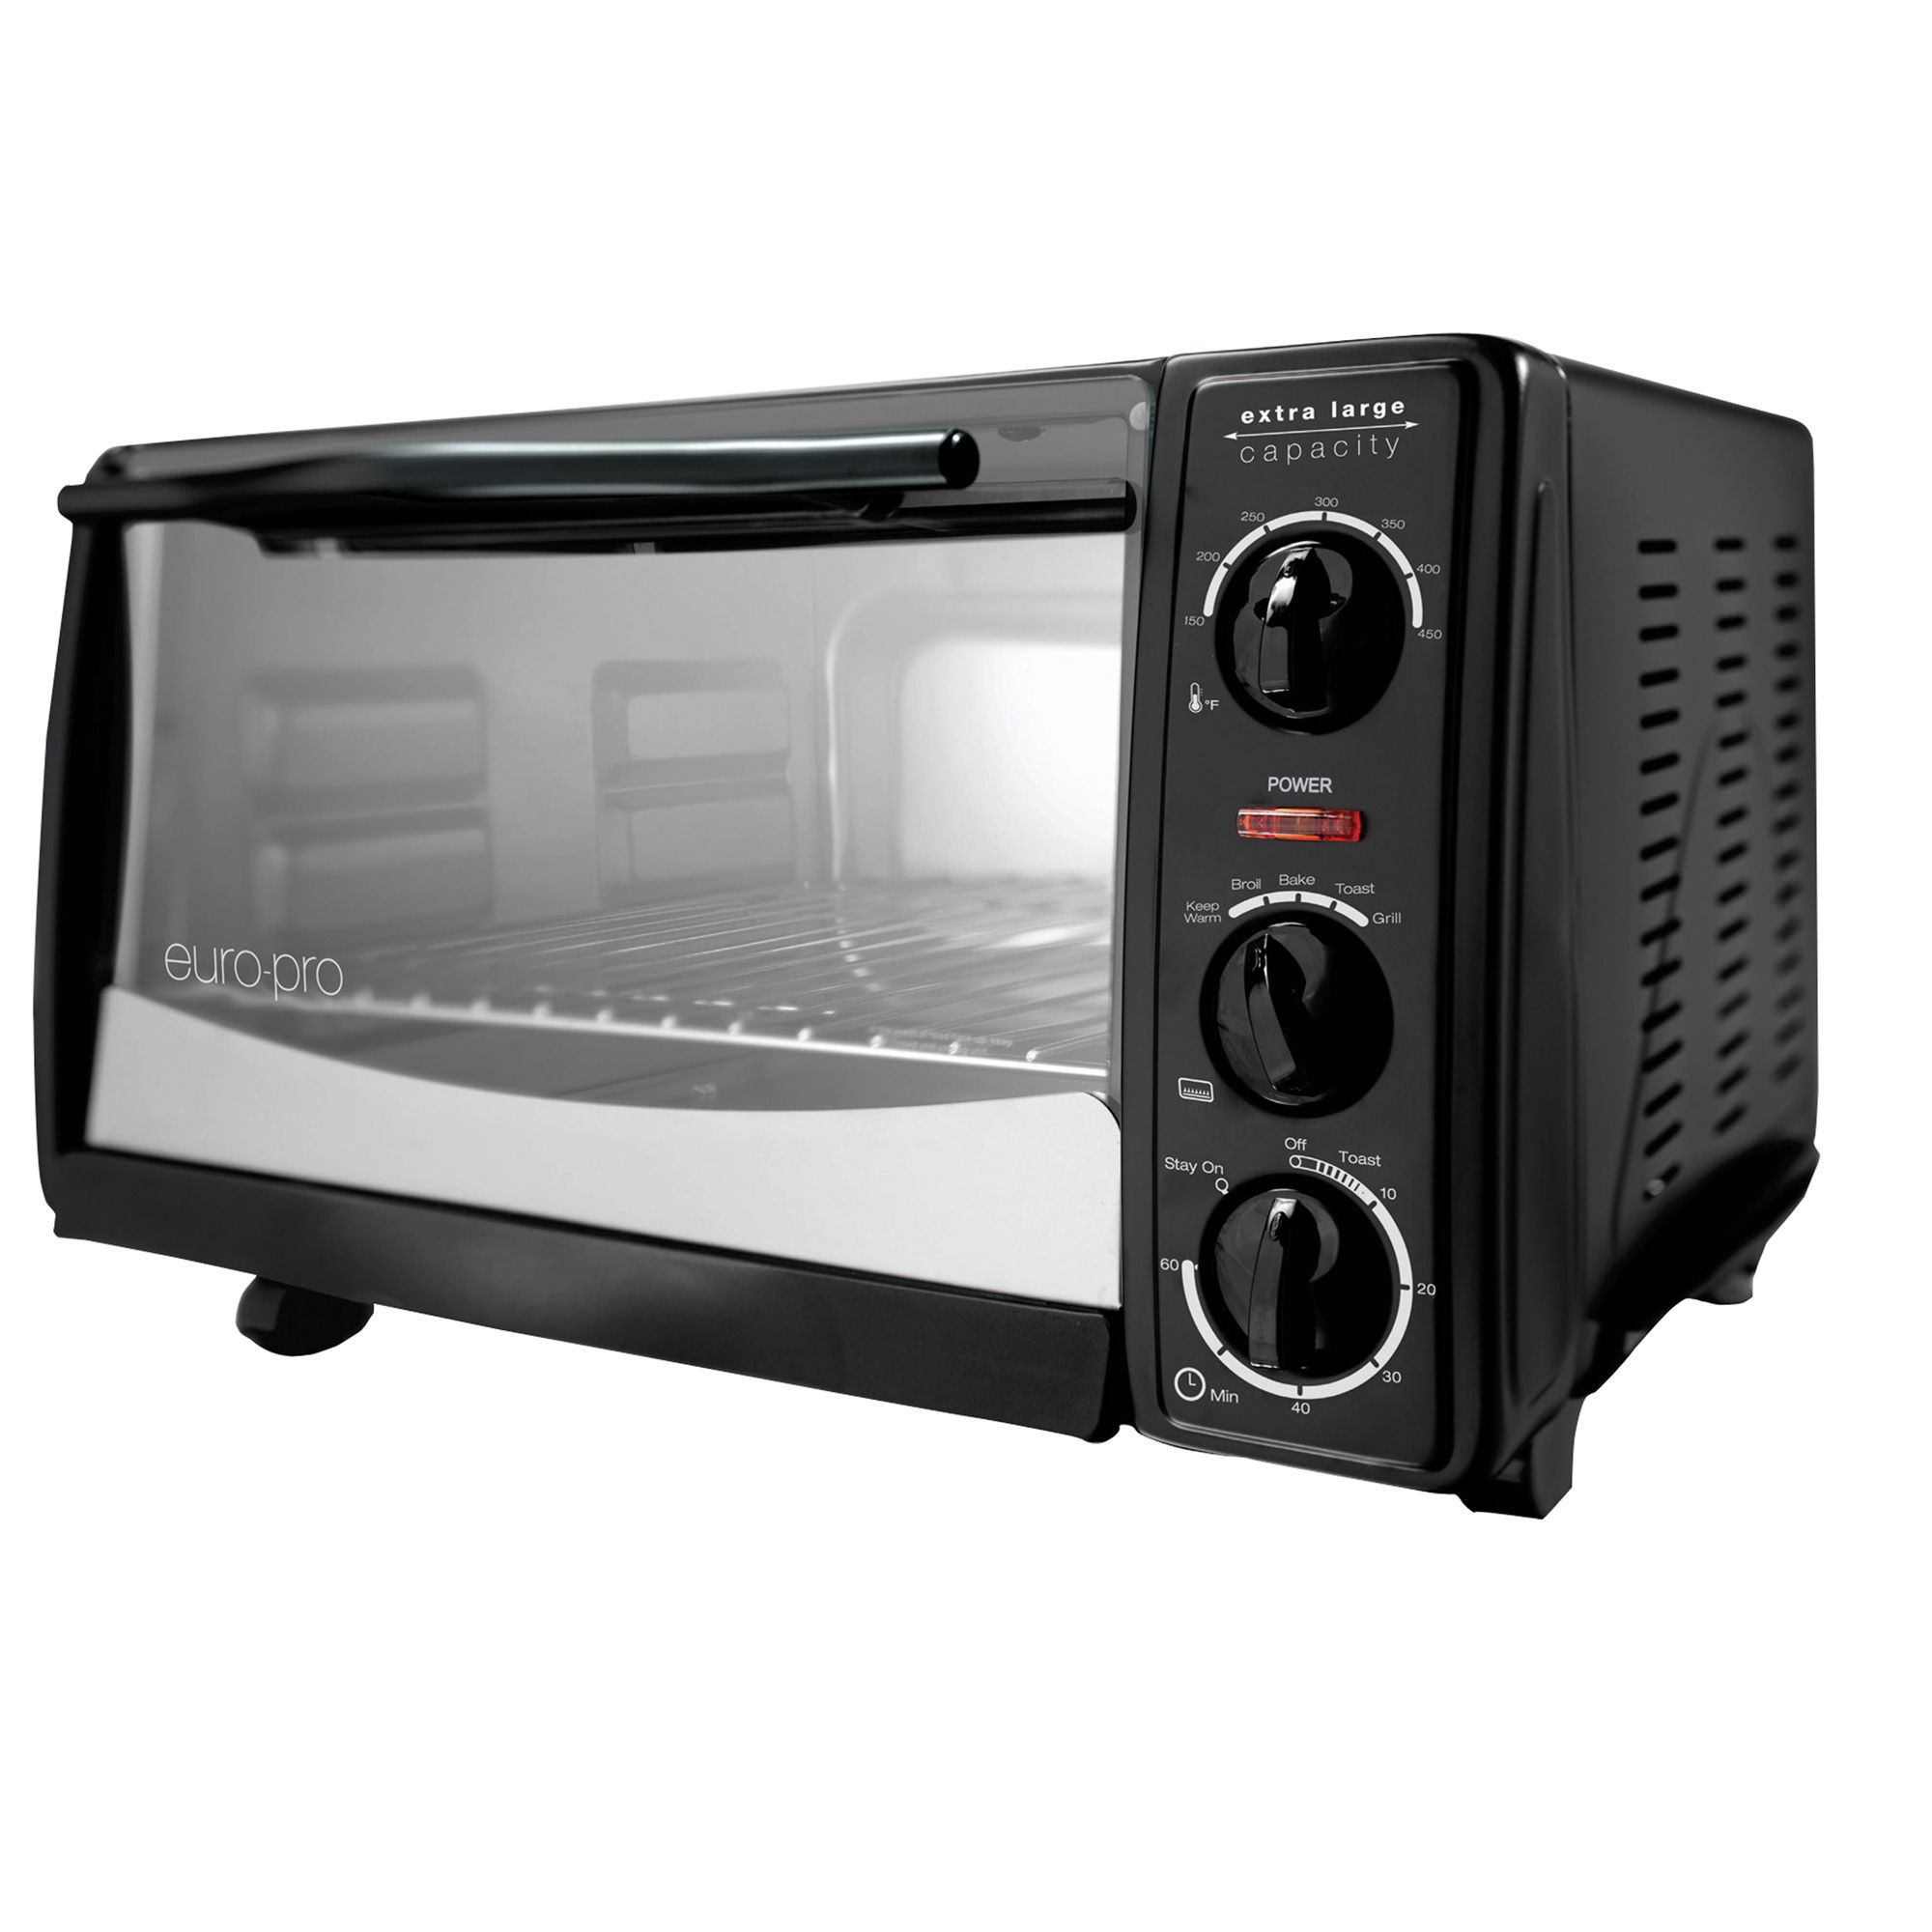 6 Slice Toaster Oven Black w/ 12 Pizza Bump